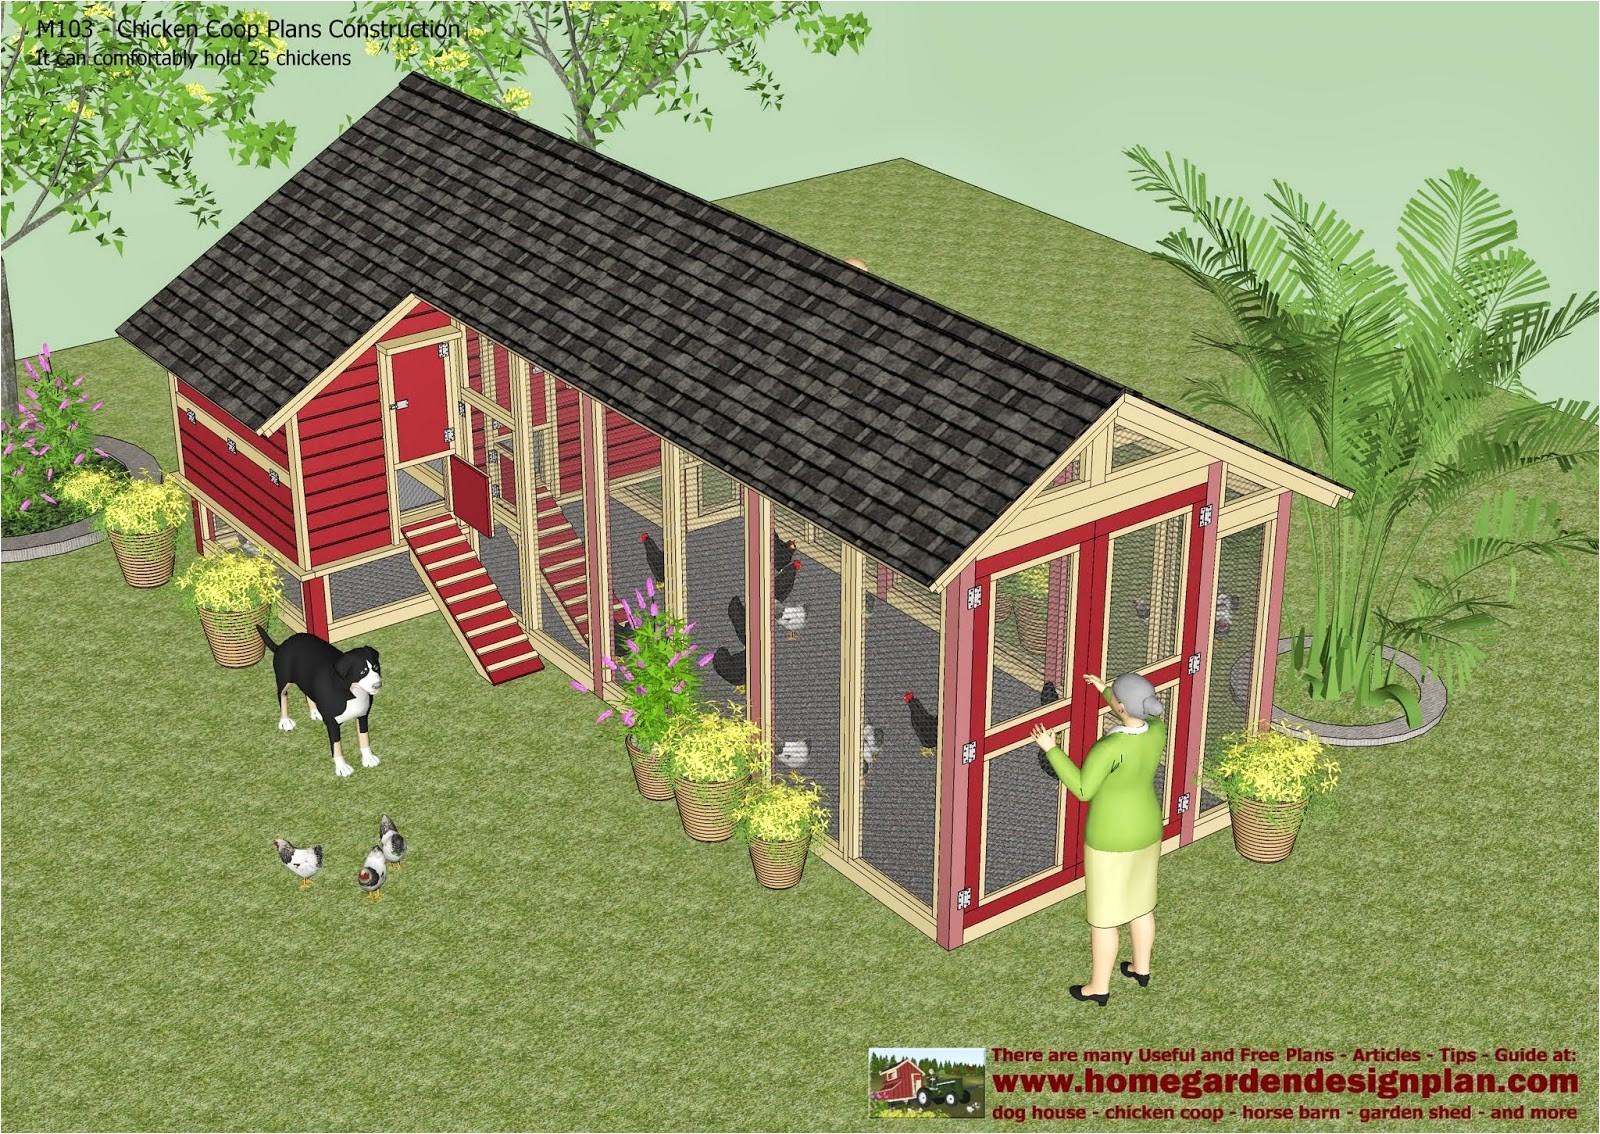 chicken coop plans for 20 chickens